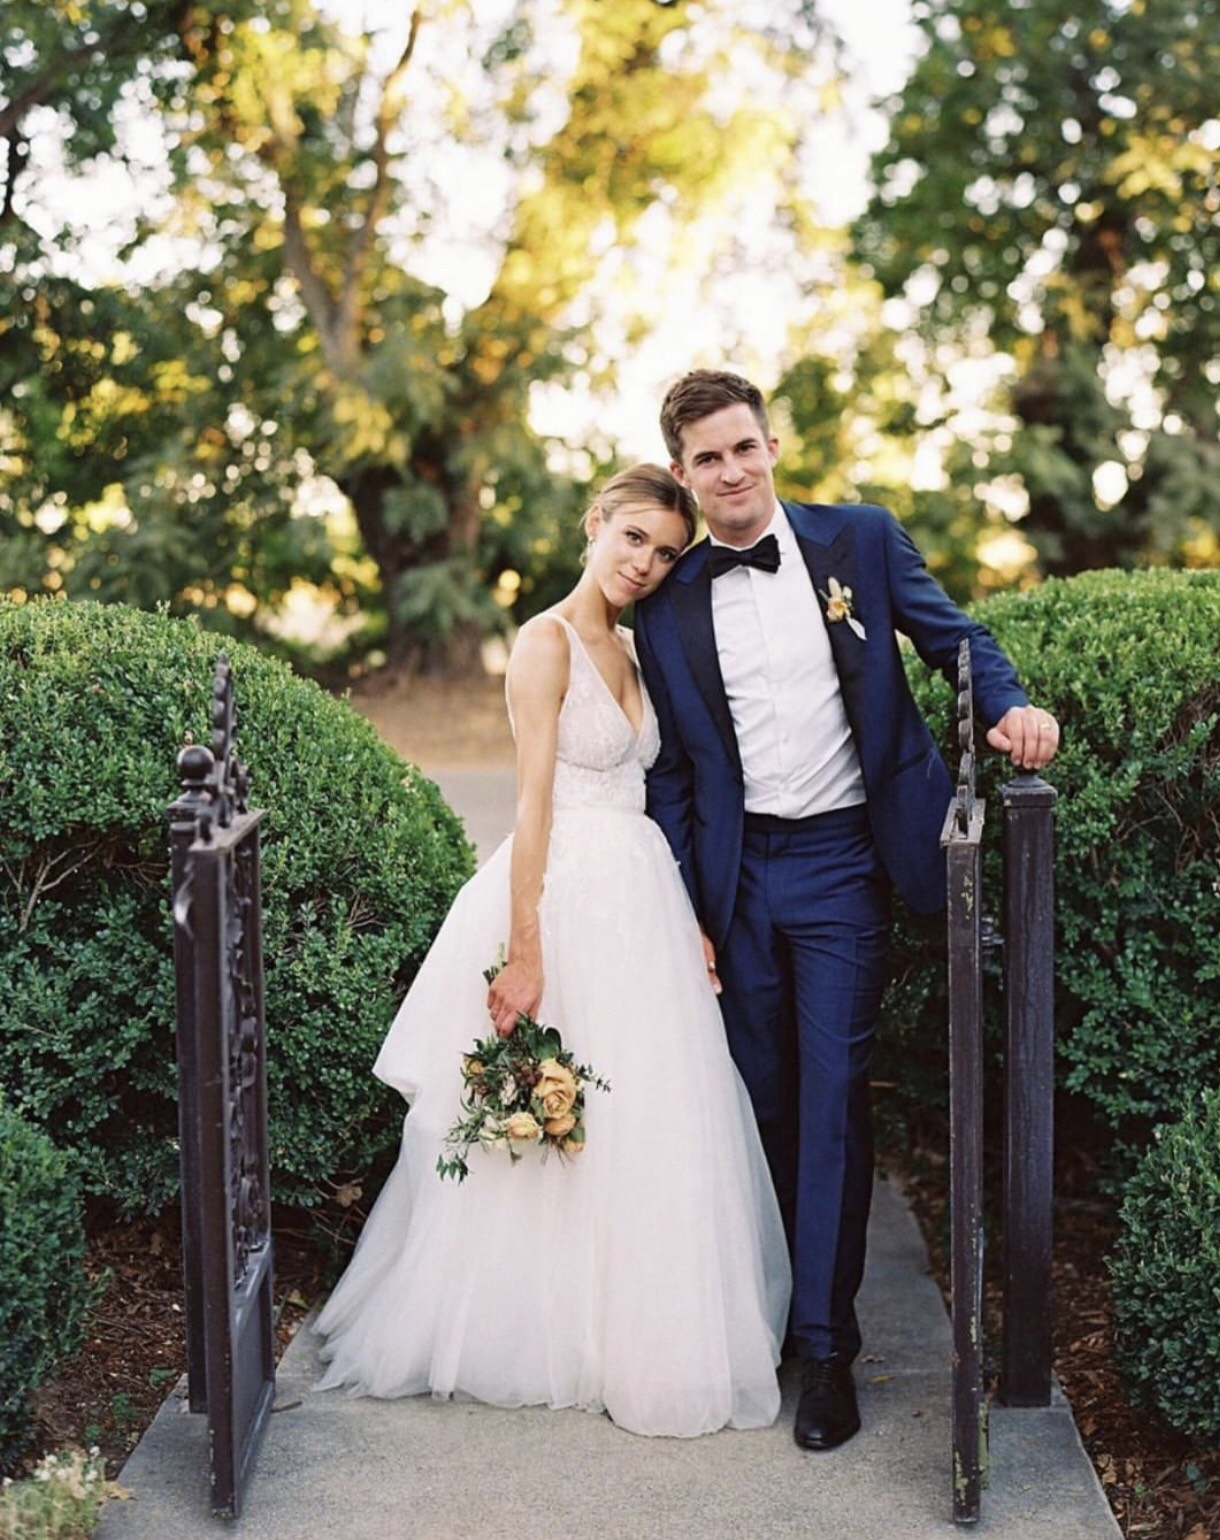 We've heard through the grapevine that this gorgeous couple will be featured on  @stylemepretty  very soon! 🙌🏼✨🏩🌳🌳 Photo:  @lynetteboyle  | Planning + Design:  @kaellalynn  | Florals:  @amandavidmardesign  |  Dress:  @moniquelhuillier